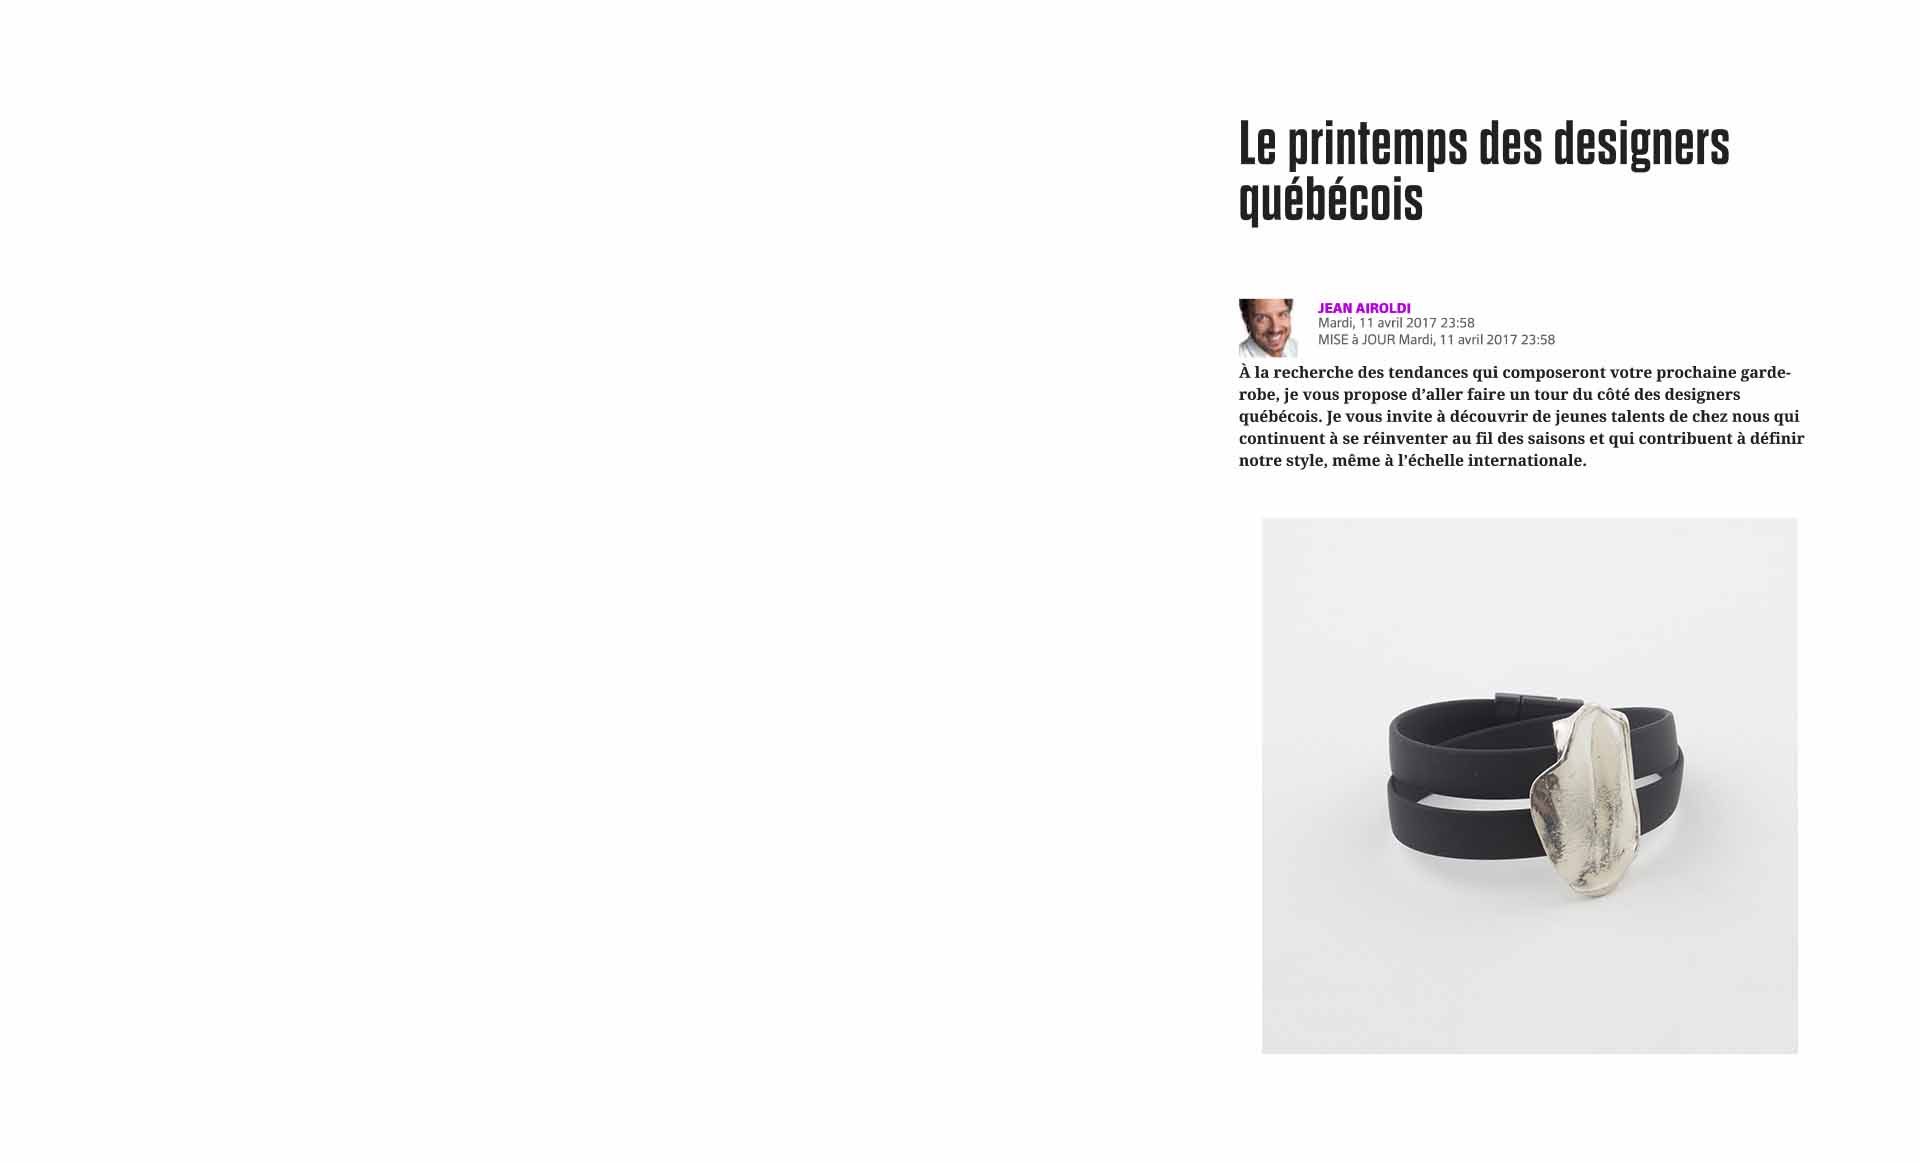 The Quebecois designers by Le Journal de Montréal